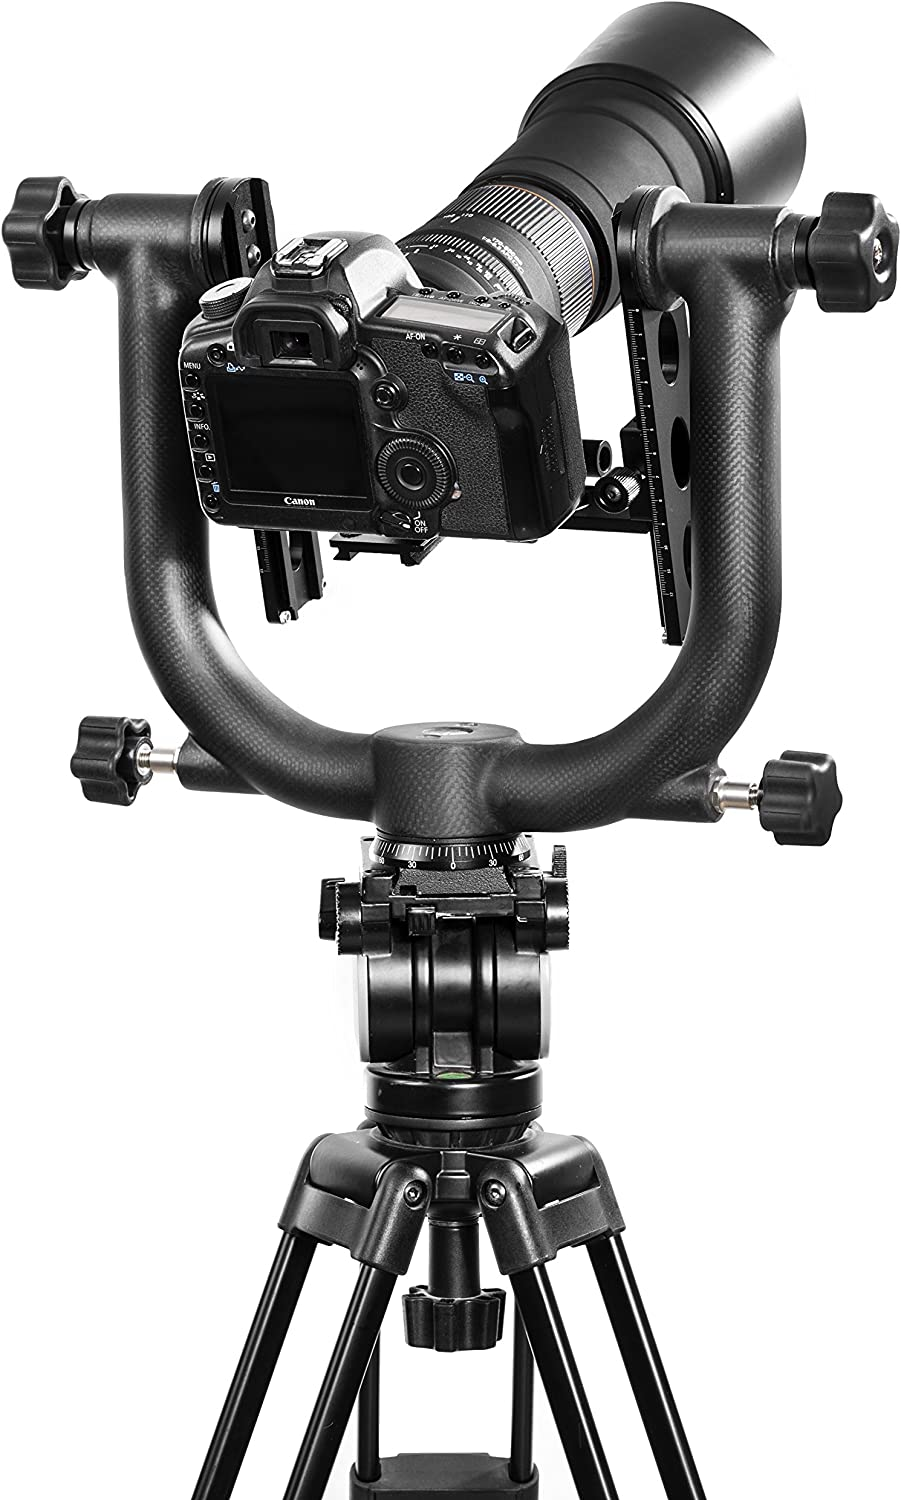 Movo GH1000 Heavy-Duty Carbon Fiber Double Gimbal Tripod Head with Arca-Swiss Quick-Release Plate